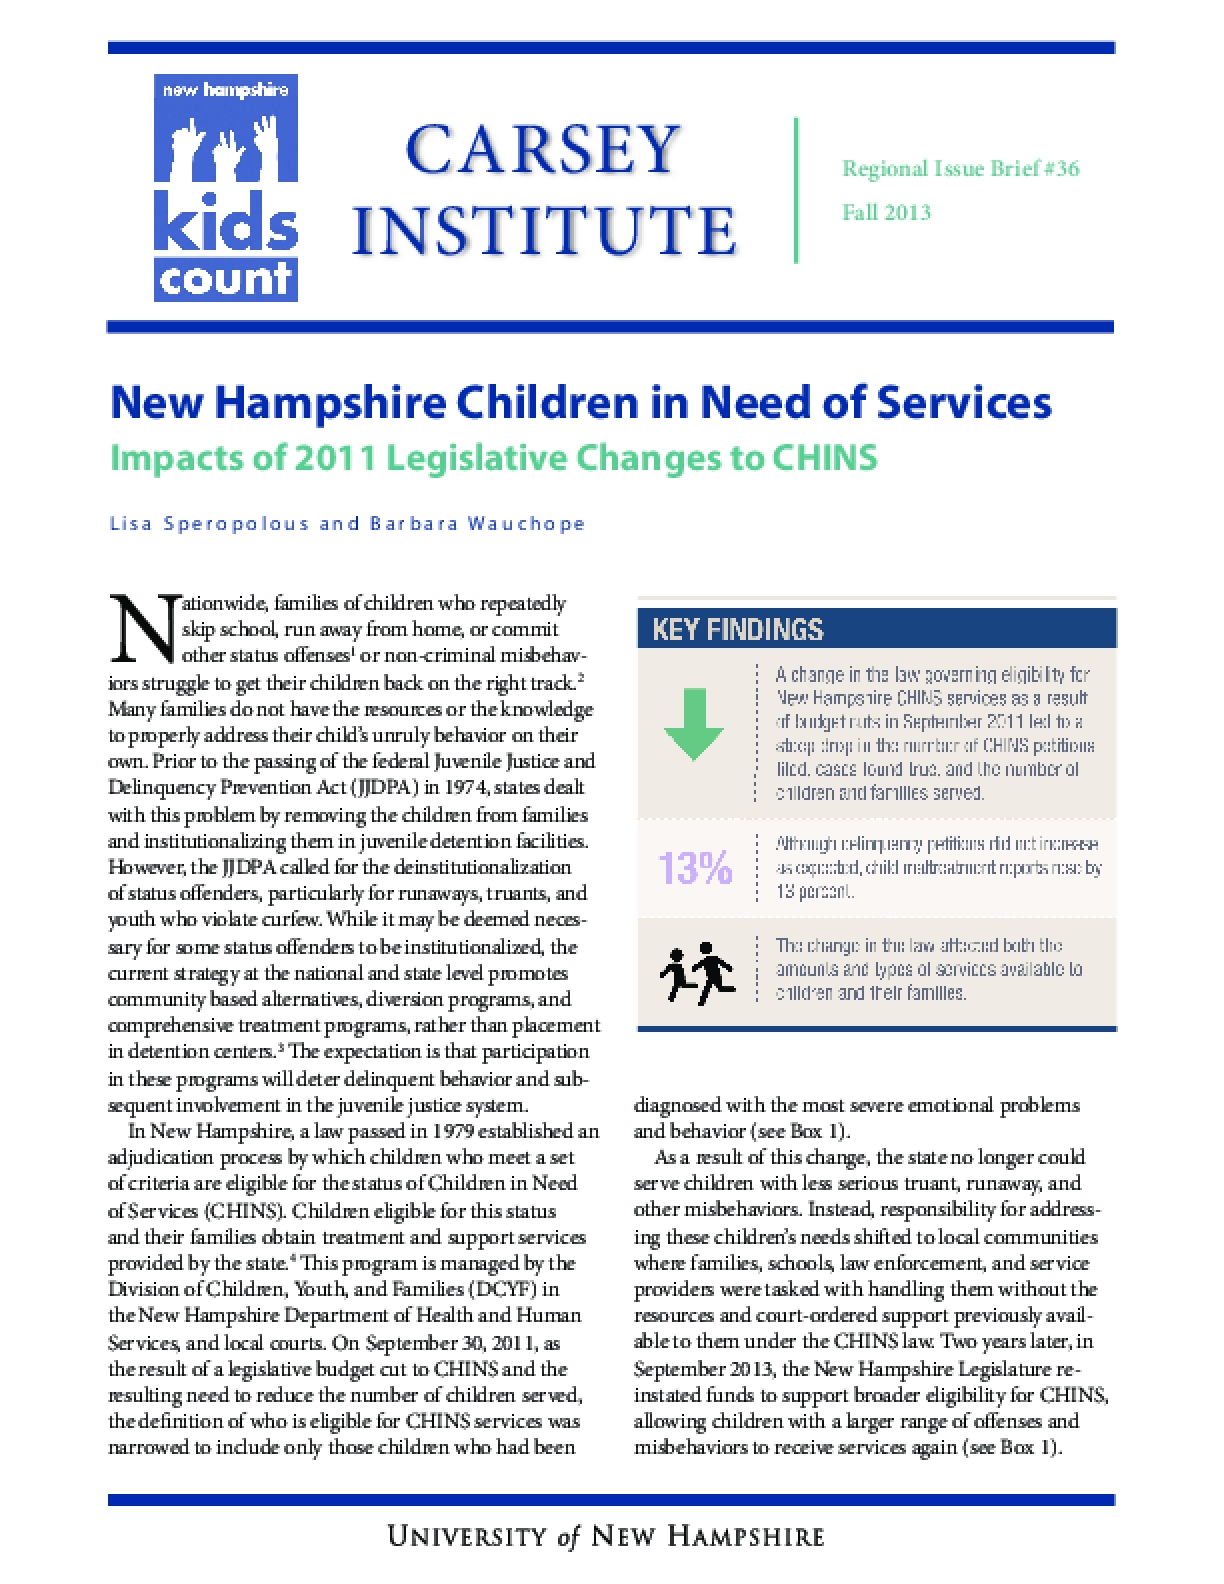 New Hampshire Children in Need of Services Impacts of 2011 Legislative Changes to CHINS